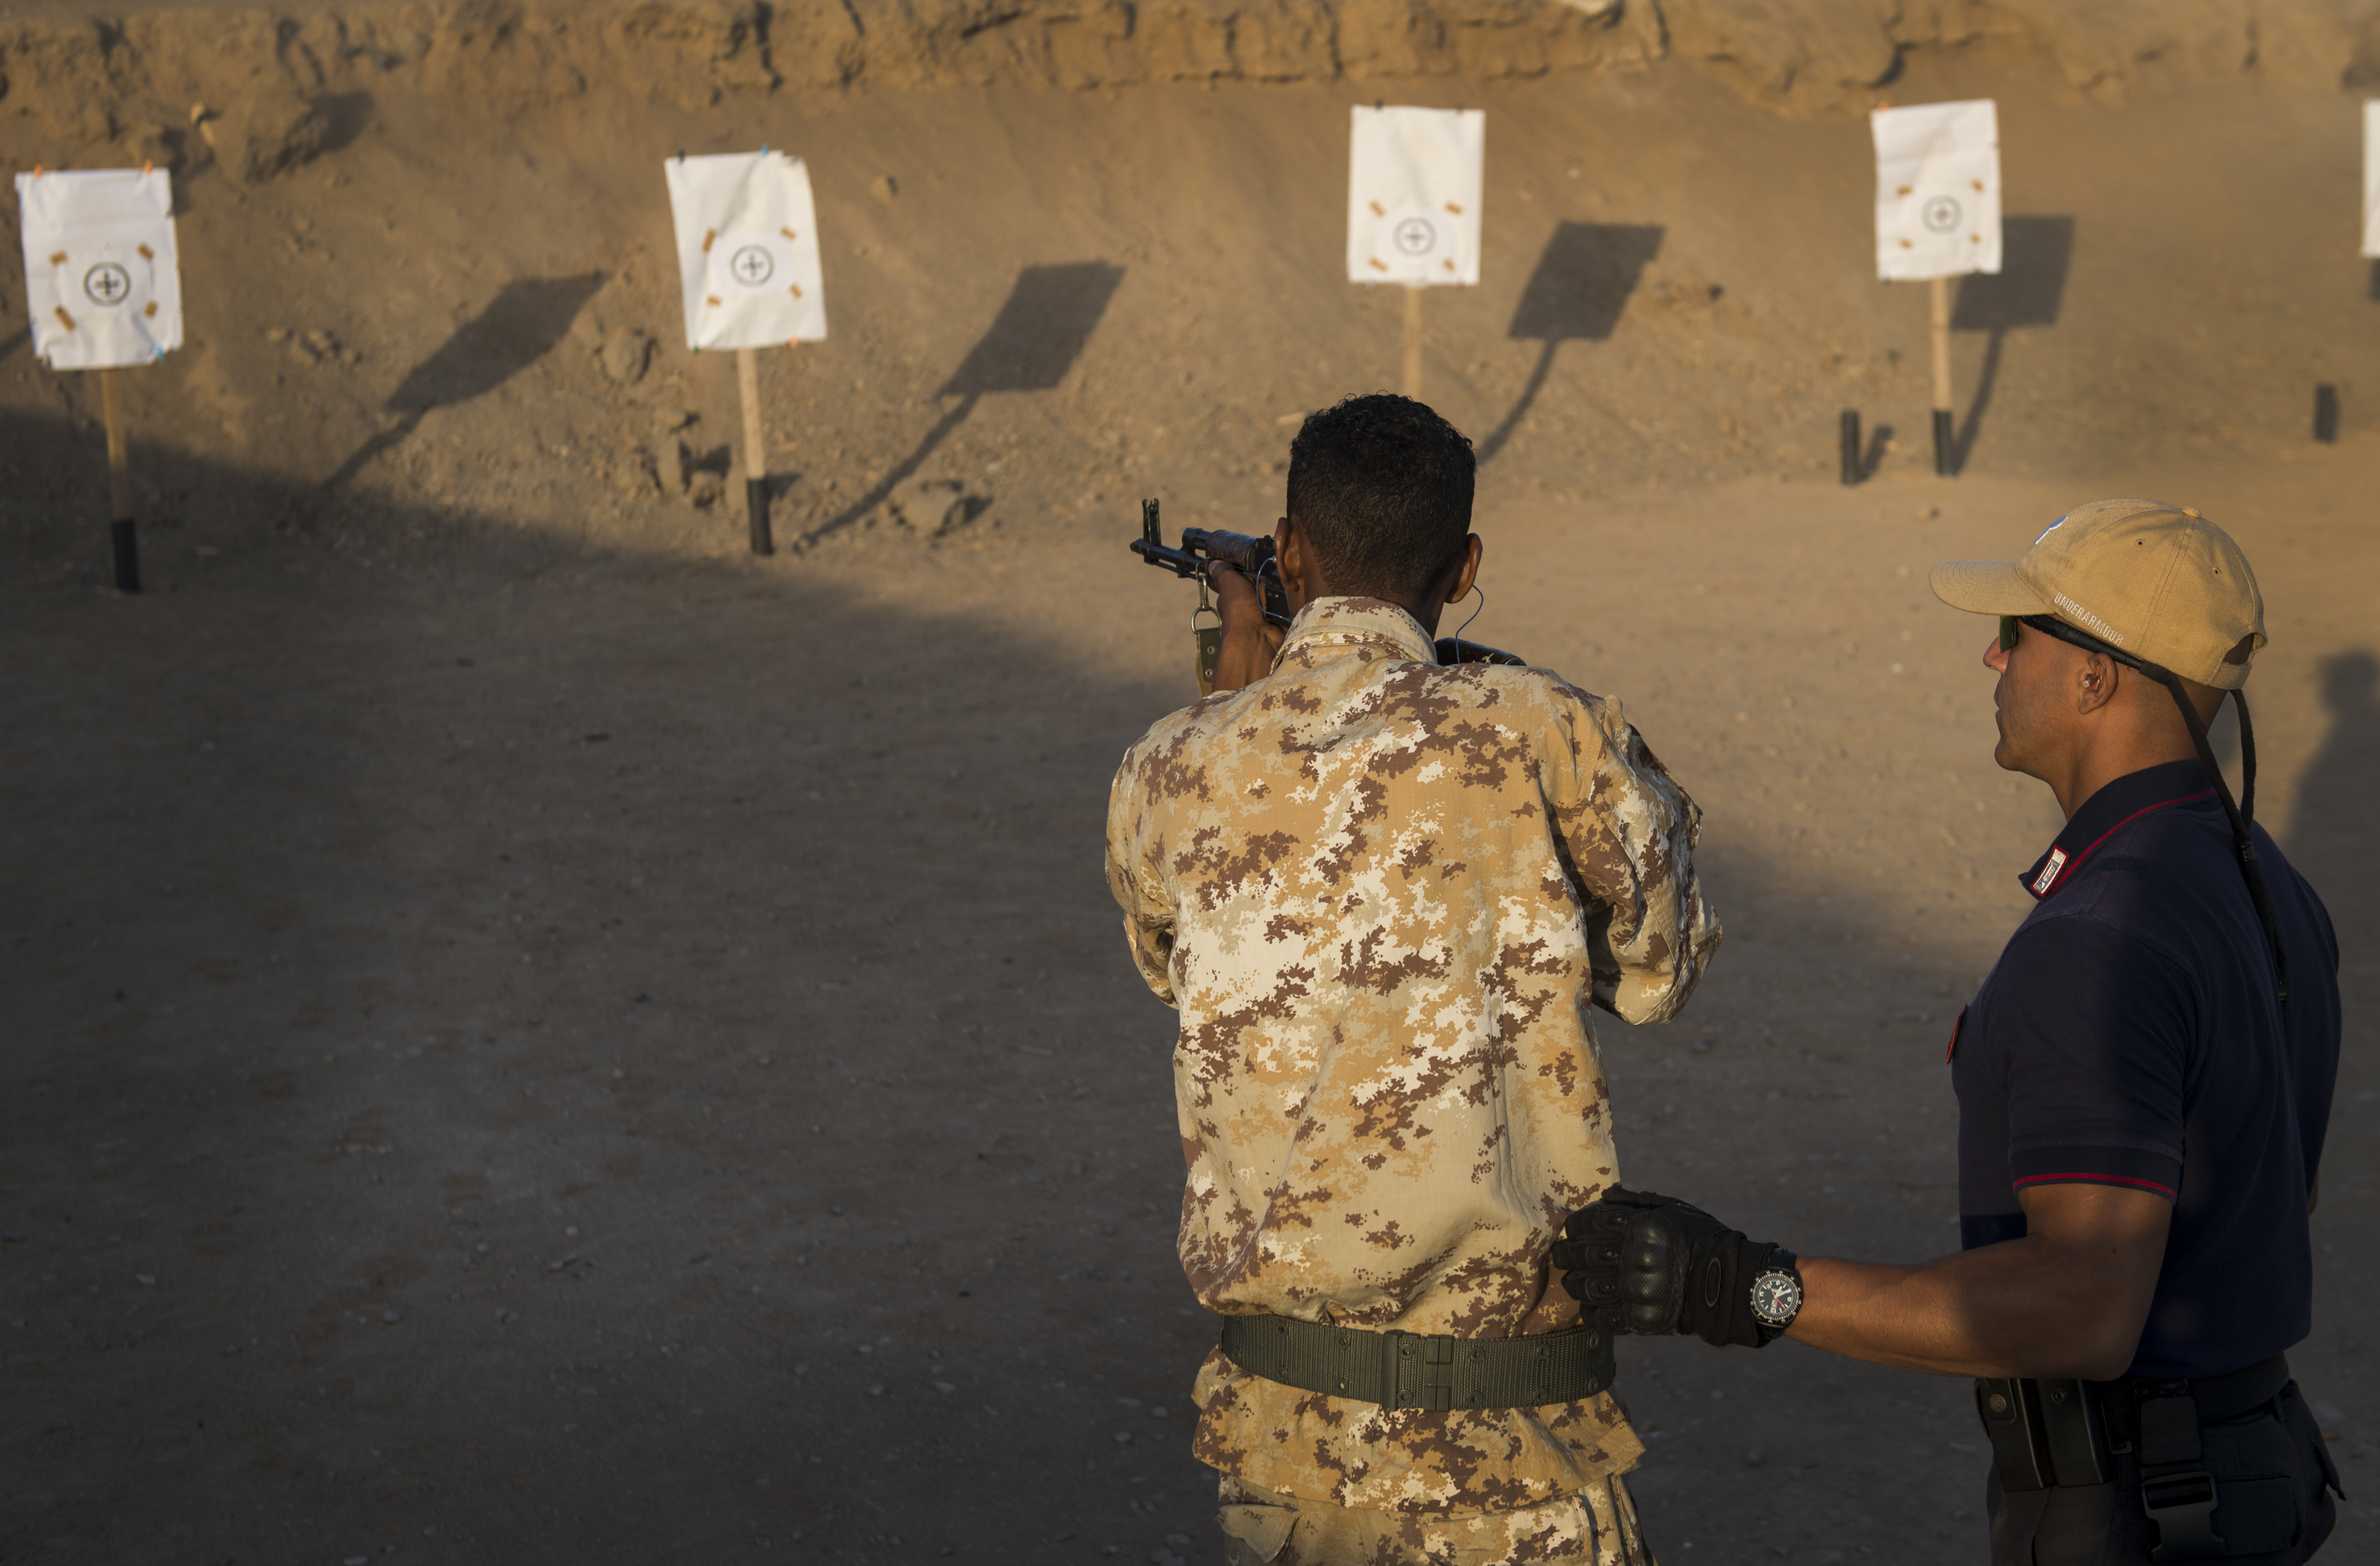 Members of the Carabinieri and Somalia Police Force train at a shooting range in Djibouti, Djibouti, Oct. 30, 2016. The Carabinieri is in charge of training mission MAIDIT Somalia 6, which is the mission of training the Somali Police Force in order to promote the stability and security of the entire region of the Horn of Africa. (U.S. Air Force photo by Staff Sgt. Kenneth W. Norman)